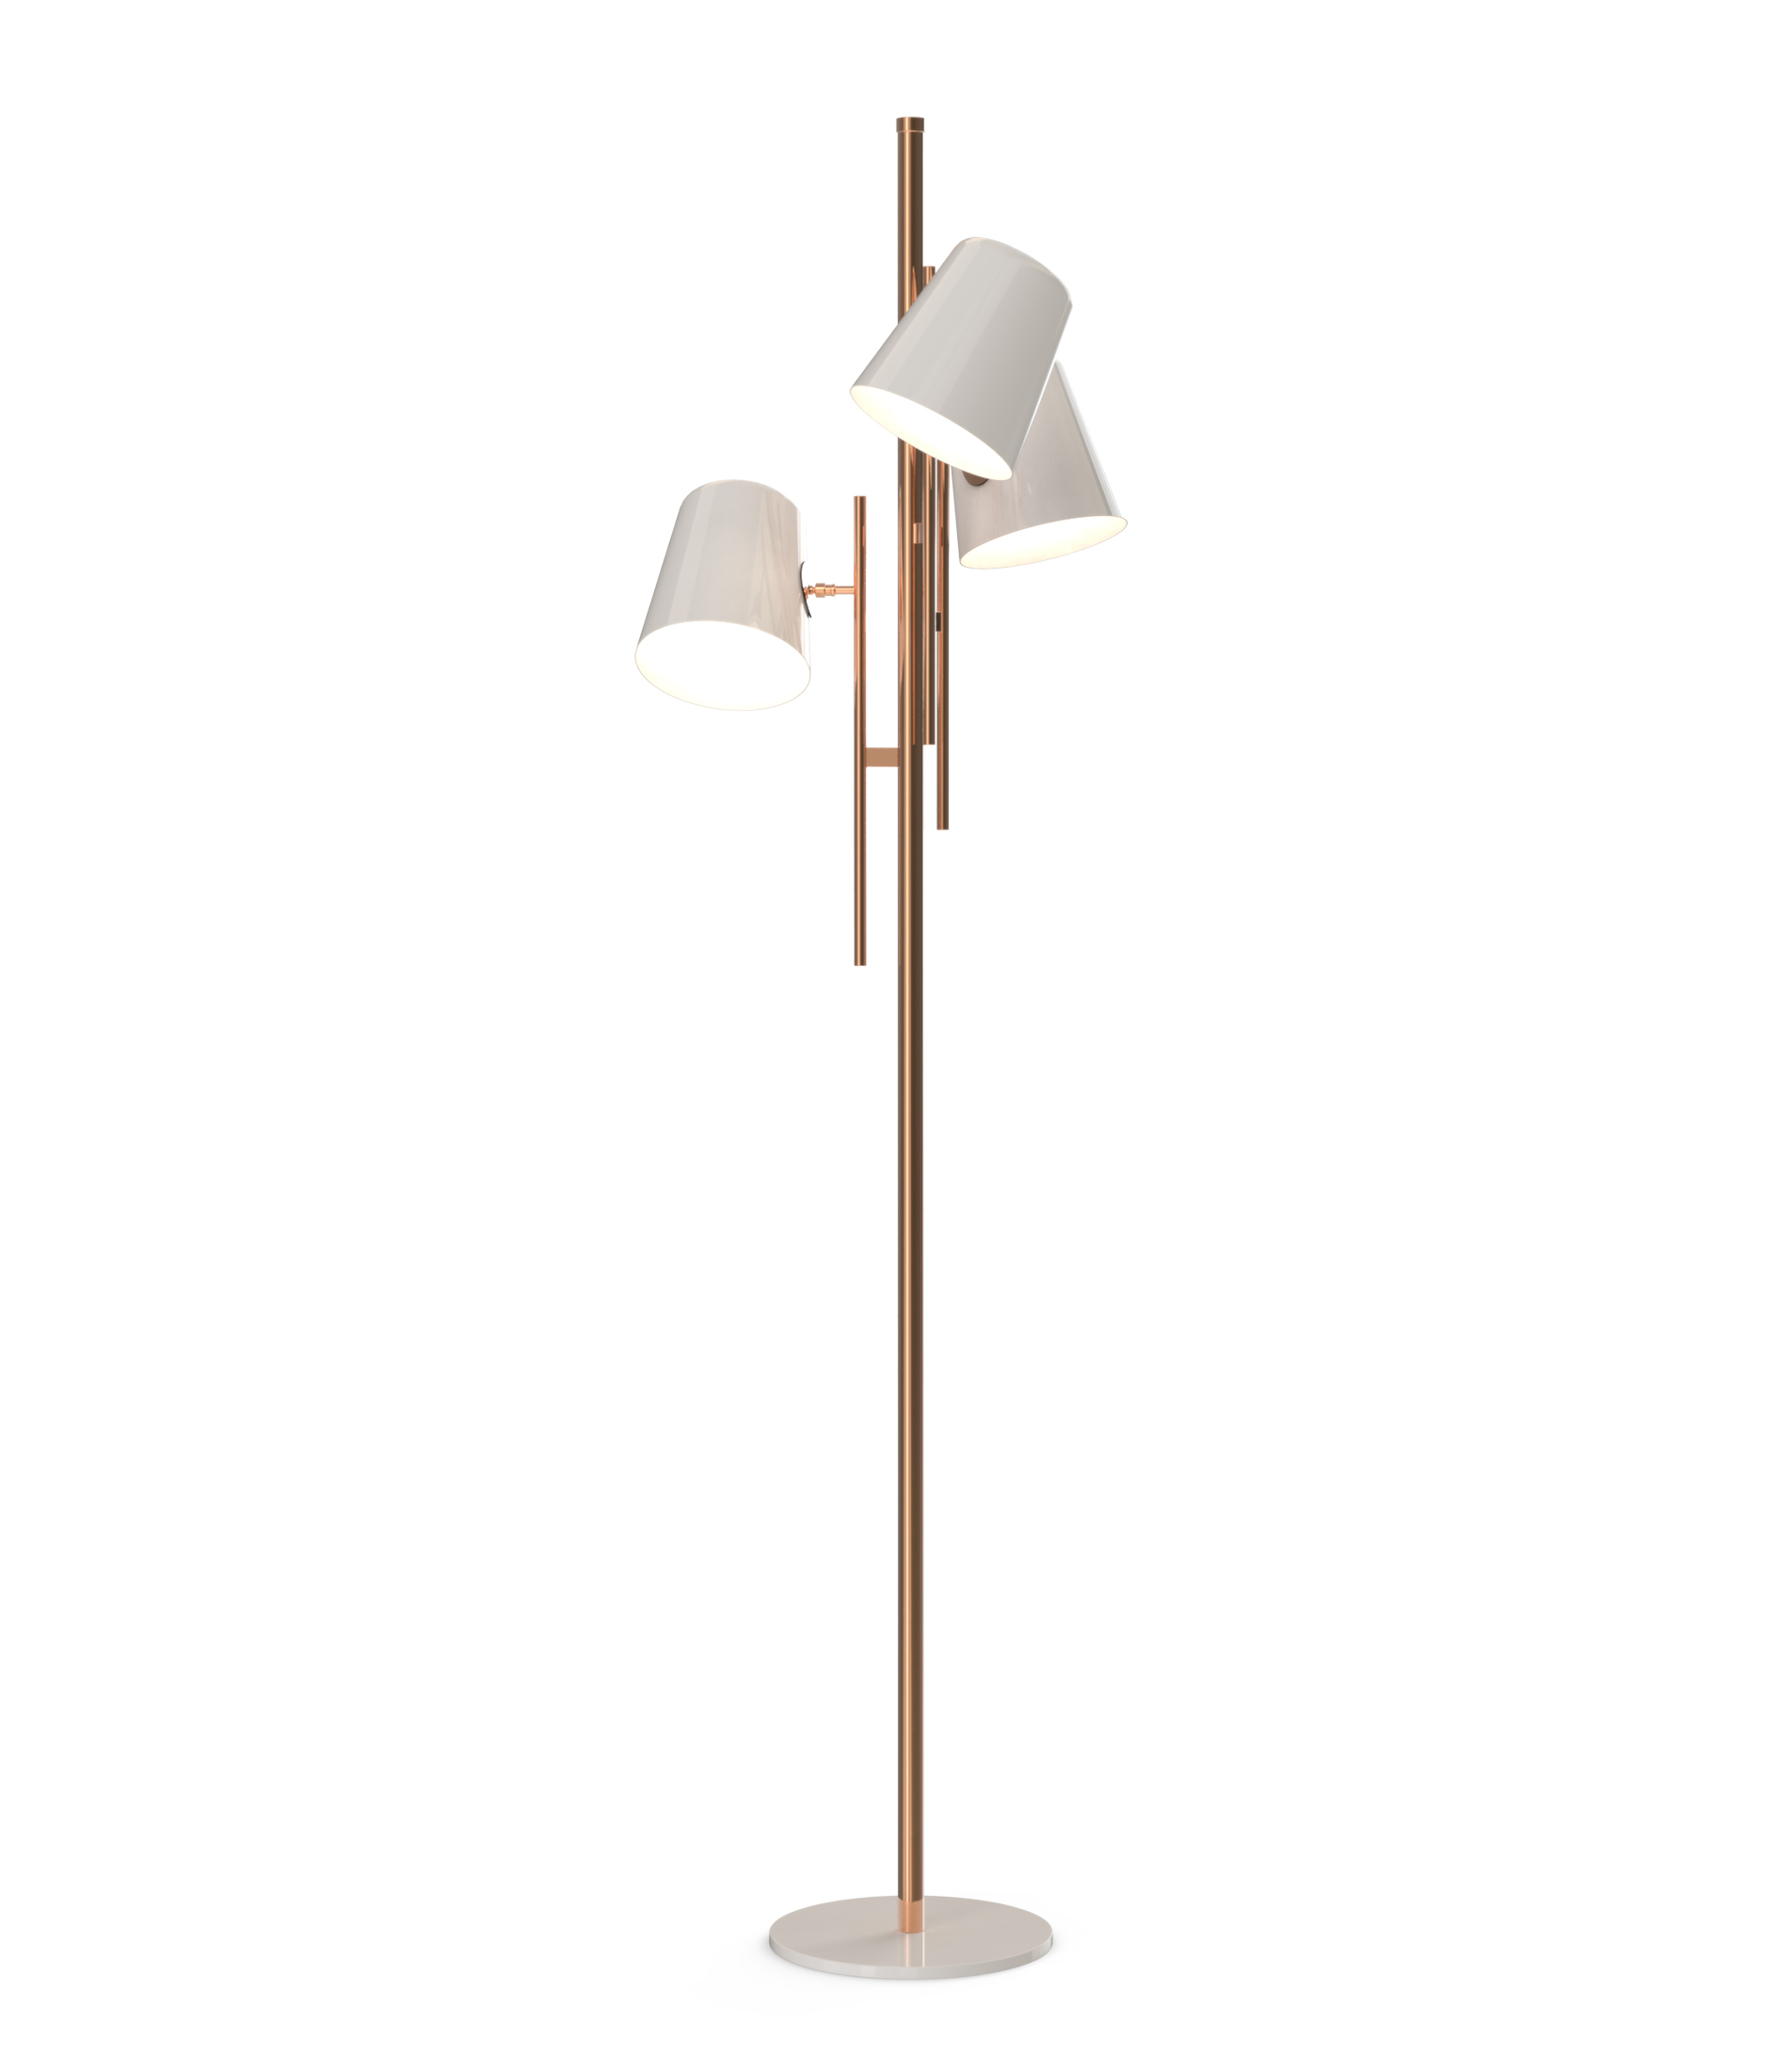 Why White Floor Lamps are The Best for Your Summer Decor 1 white floor lamps Why White Floor Lamps are The Best for Your Summer Decor Why White Floor Lamps are The Best for Your Summer Decor 2